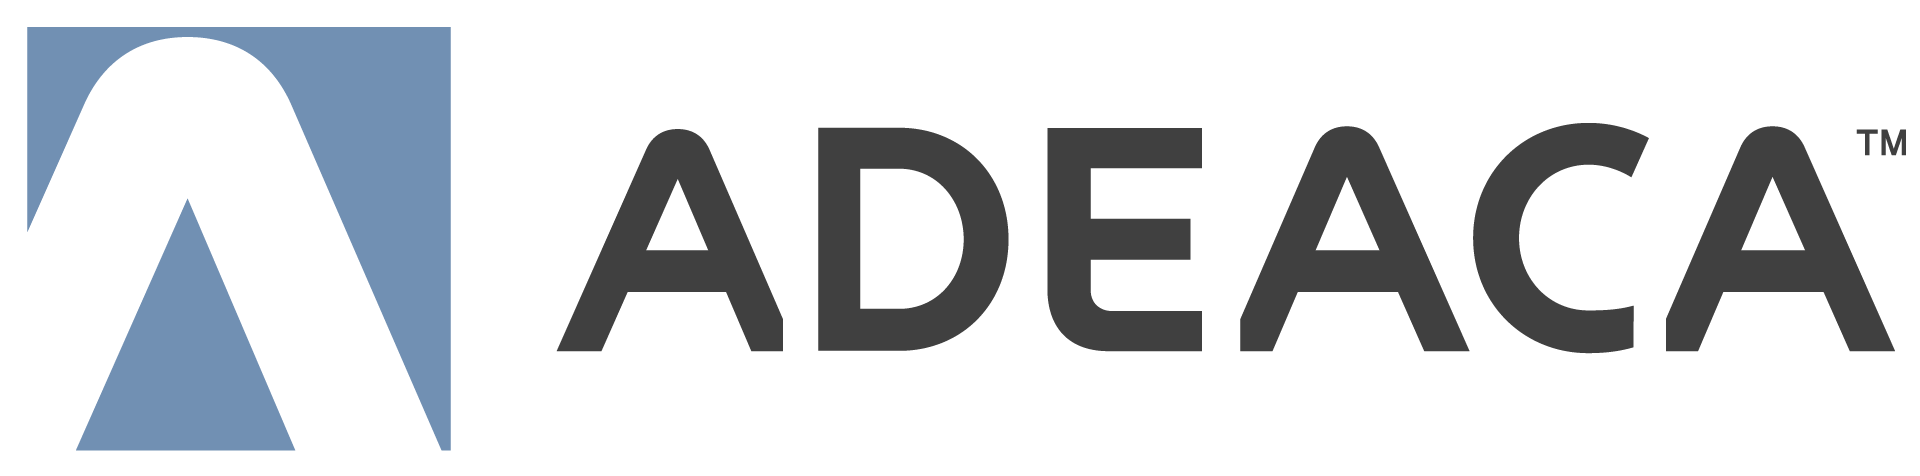 Construction Industry Sees Productivity Improvements with Adeaca's Project Business Automation